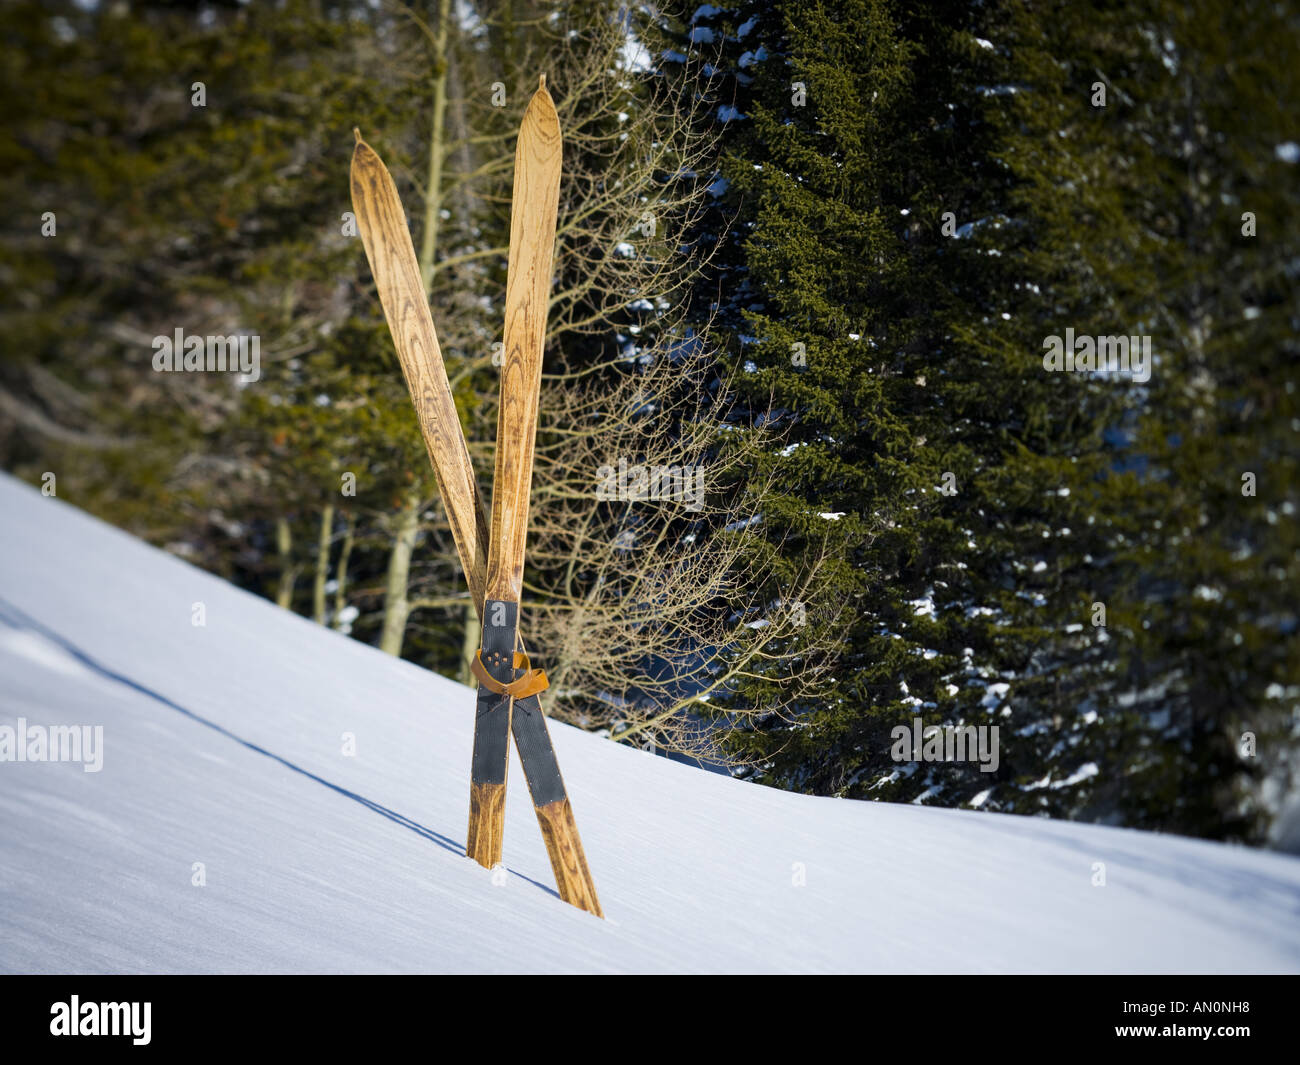 Antique Wood Skis Stock Photos Antique Wood Skis Stock Images Alamy